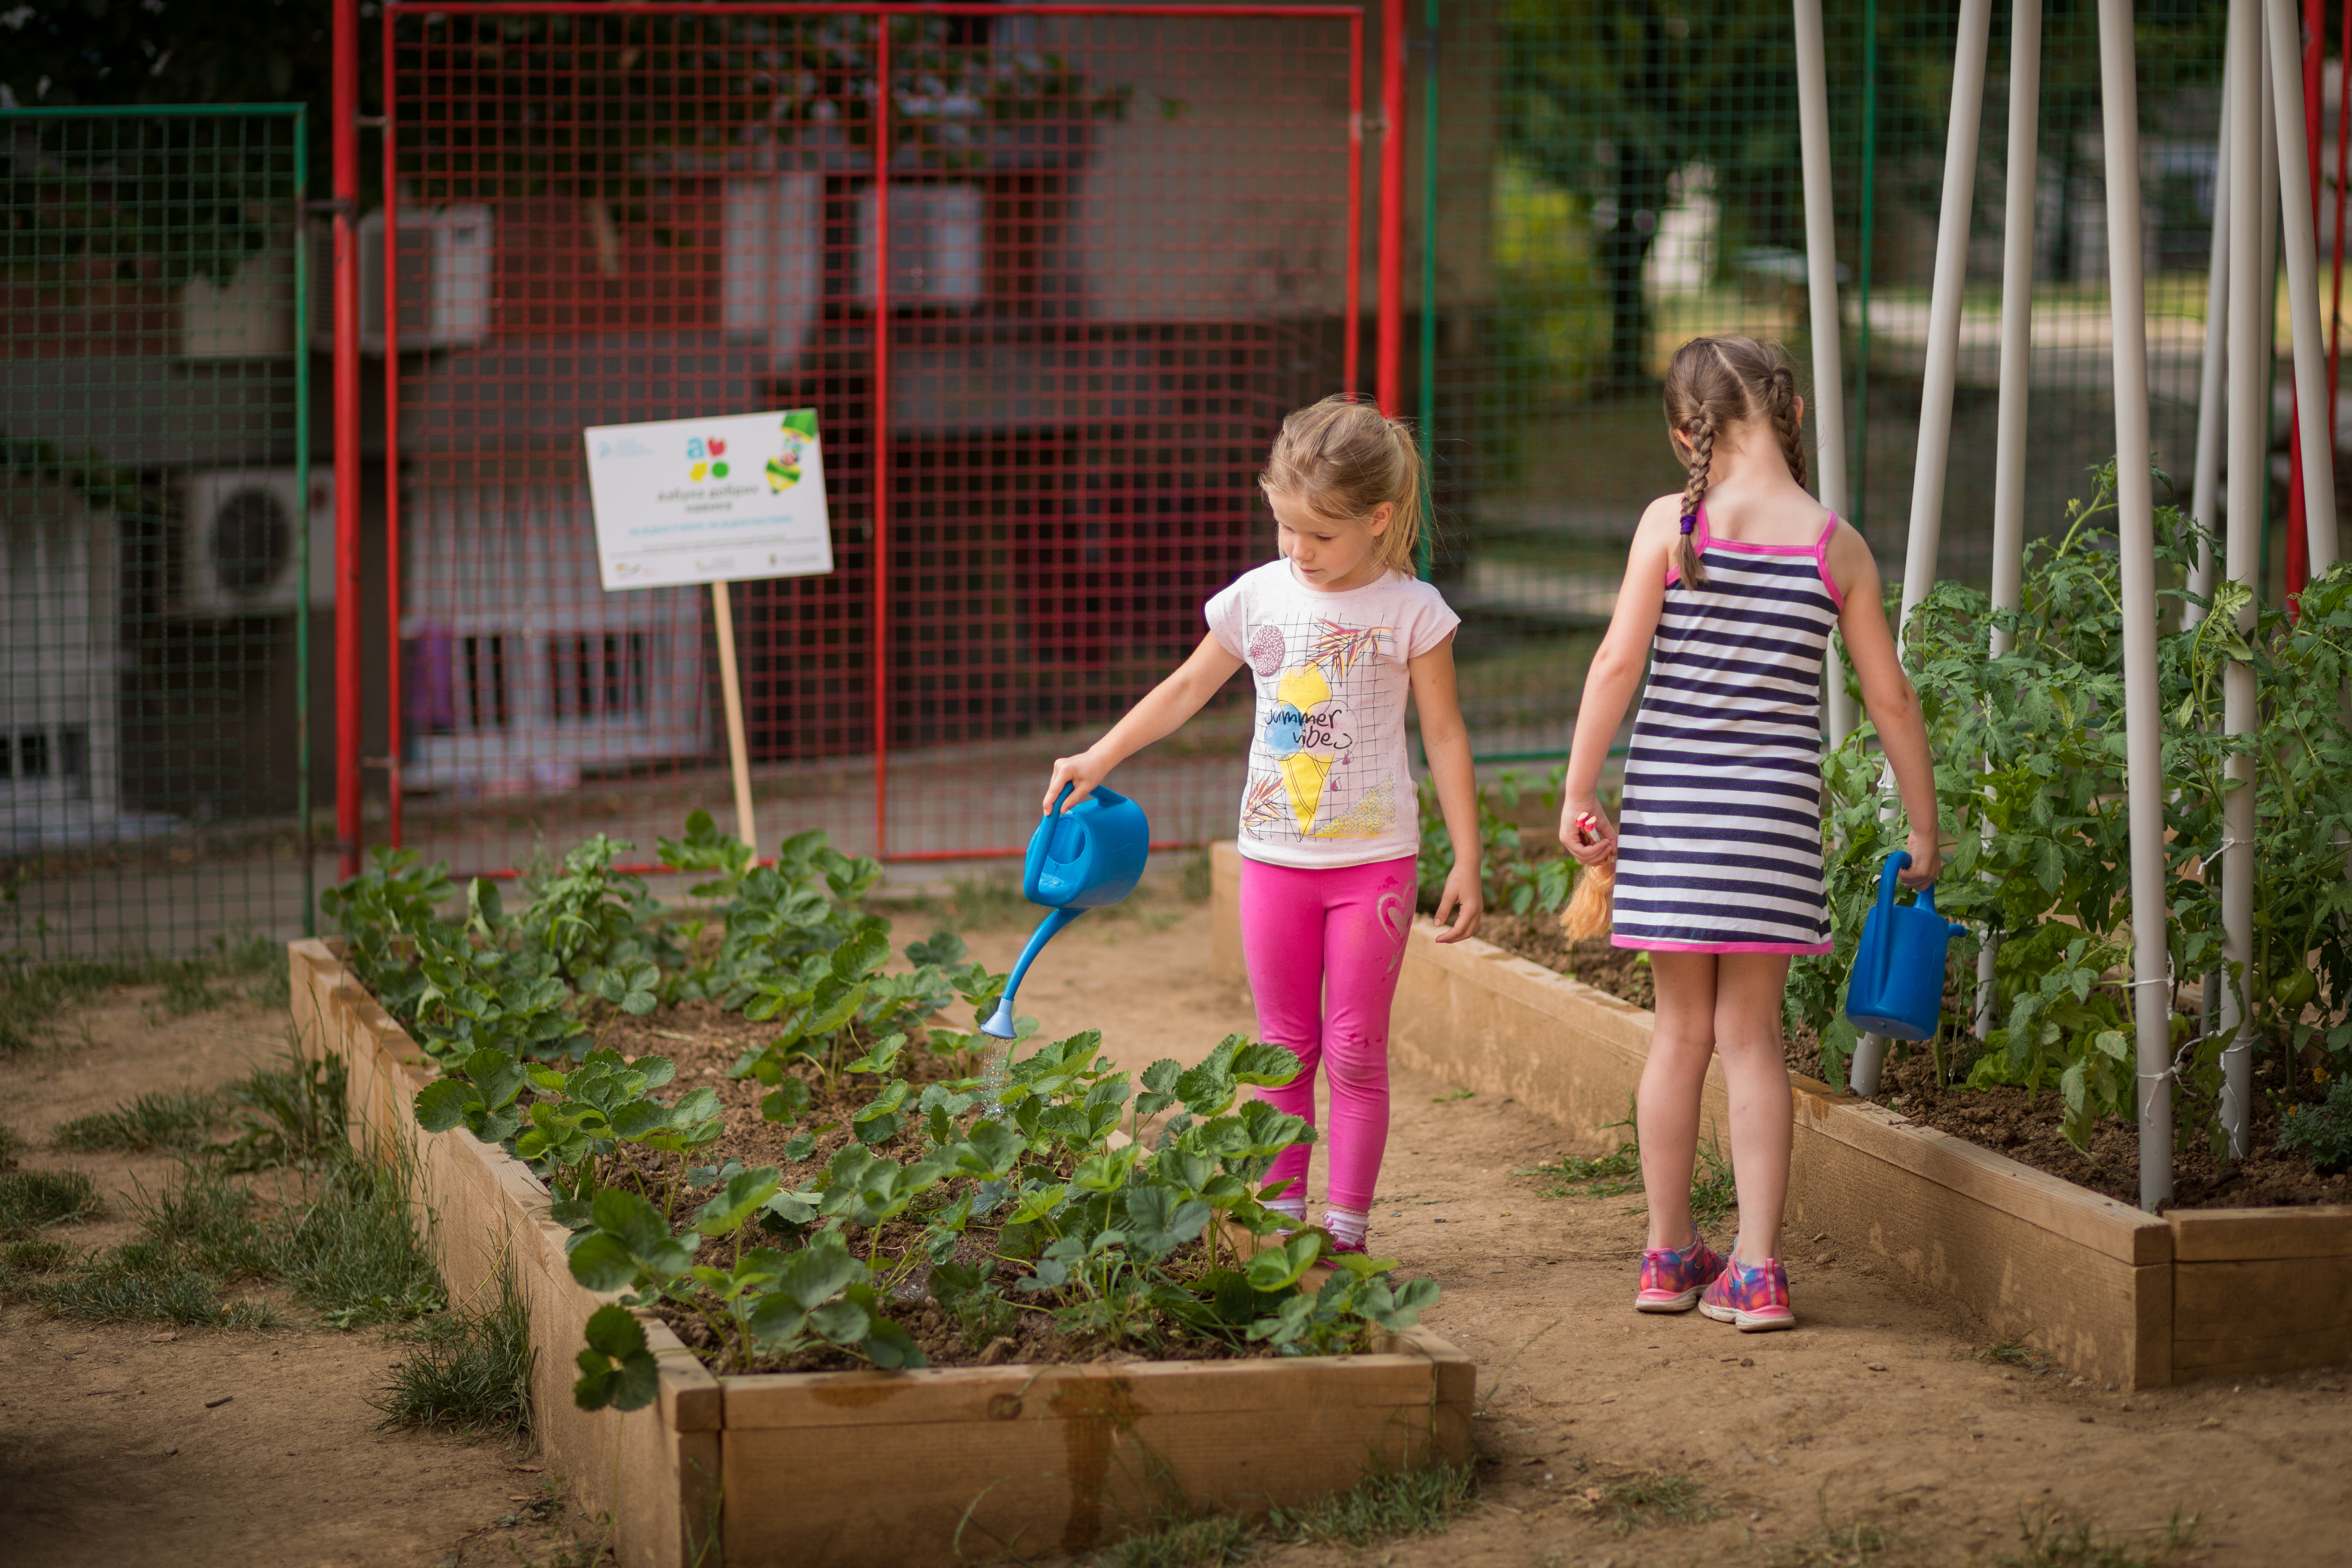 Summer is perfect for gardening with your kids. Photo by GIZ